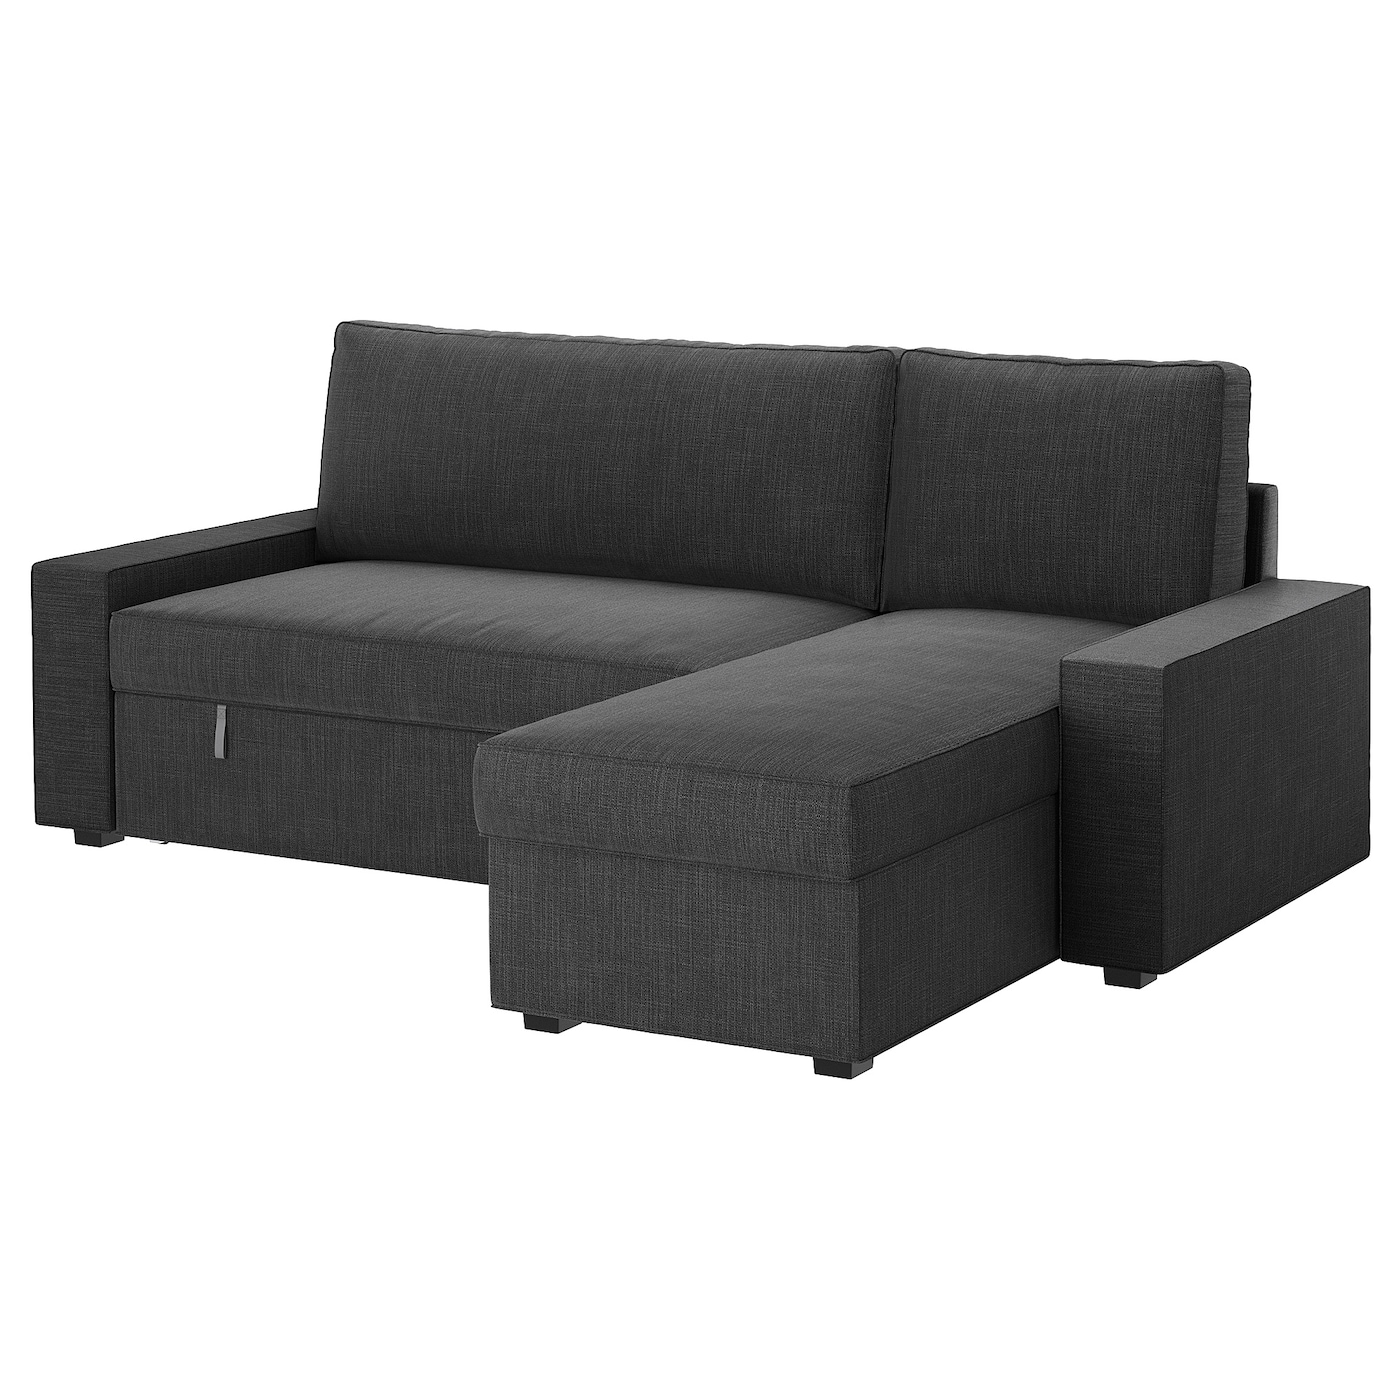 Vilasund sofa bed with chaise longue hillared anthracite for Sofa 170 cm breit